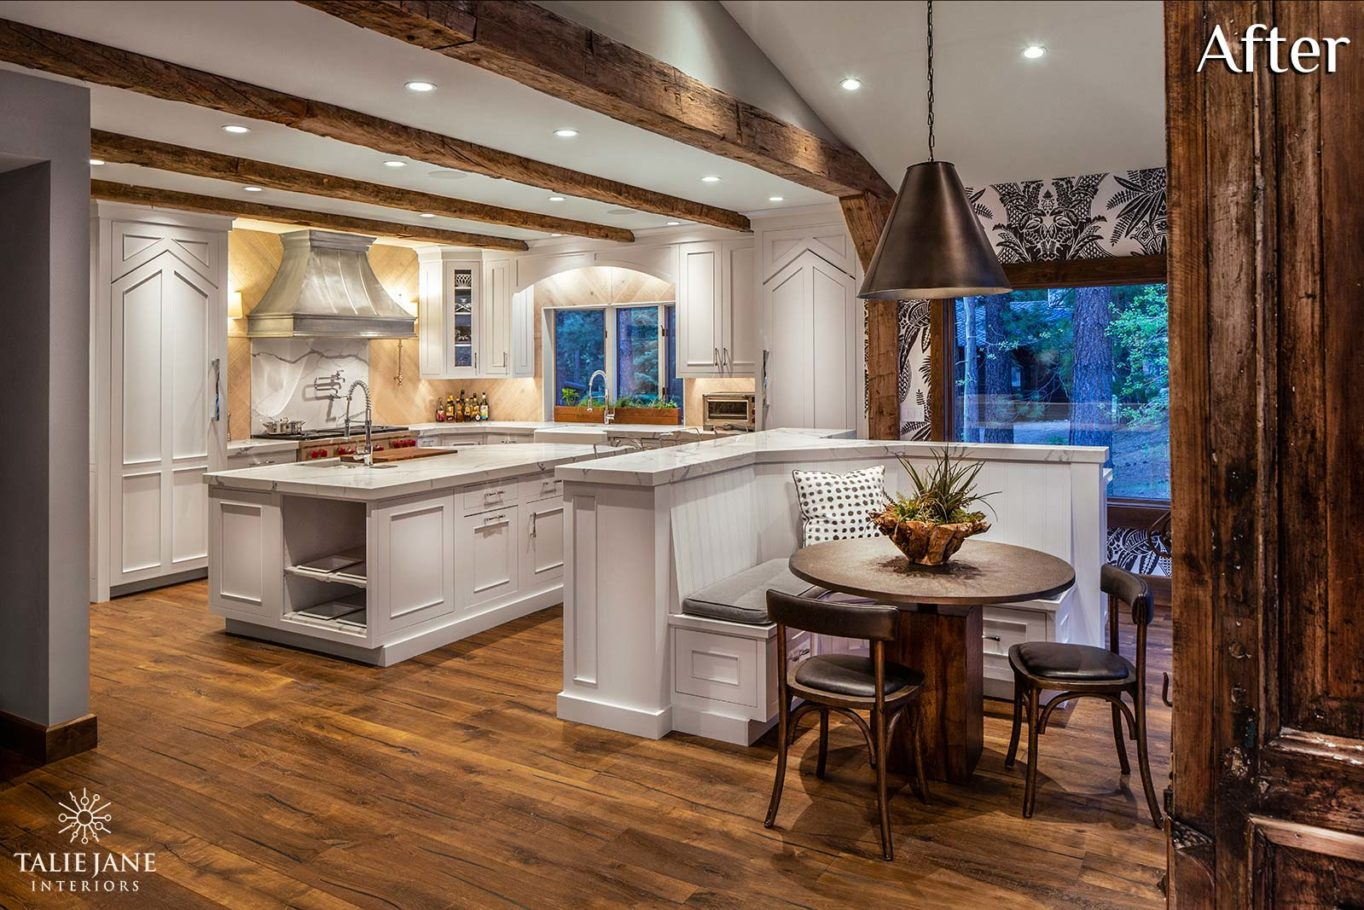 Kitchen Interior Design - Talie Jane Interiors